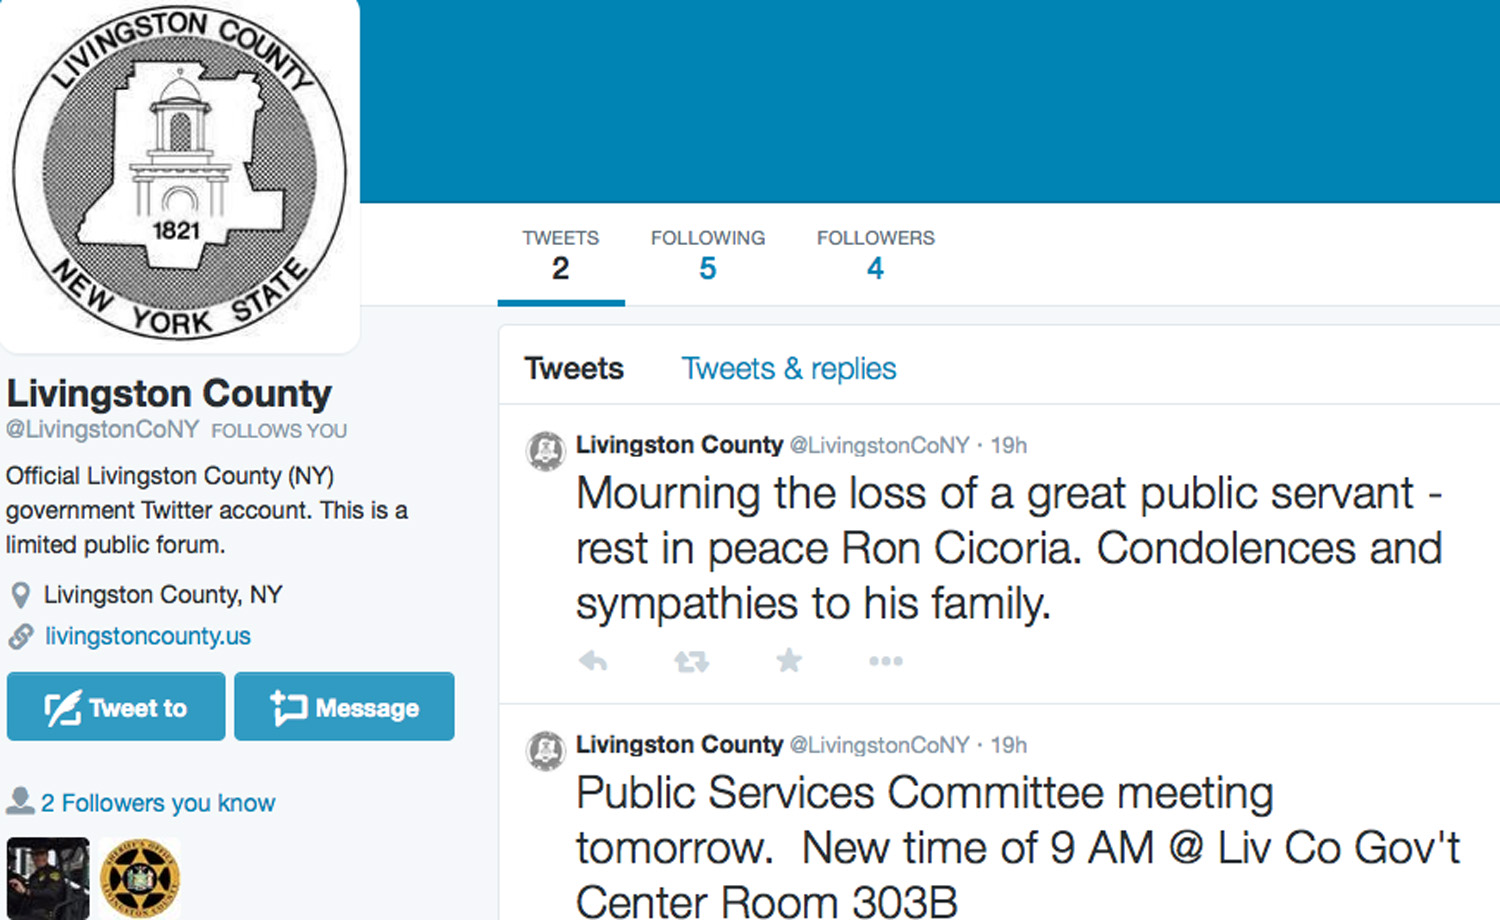 Livingston County Now Tweeting on Twitter